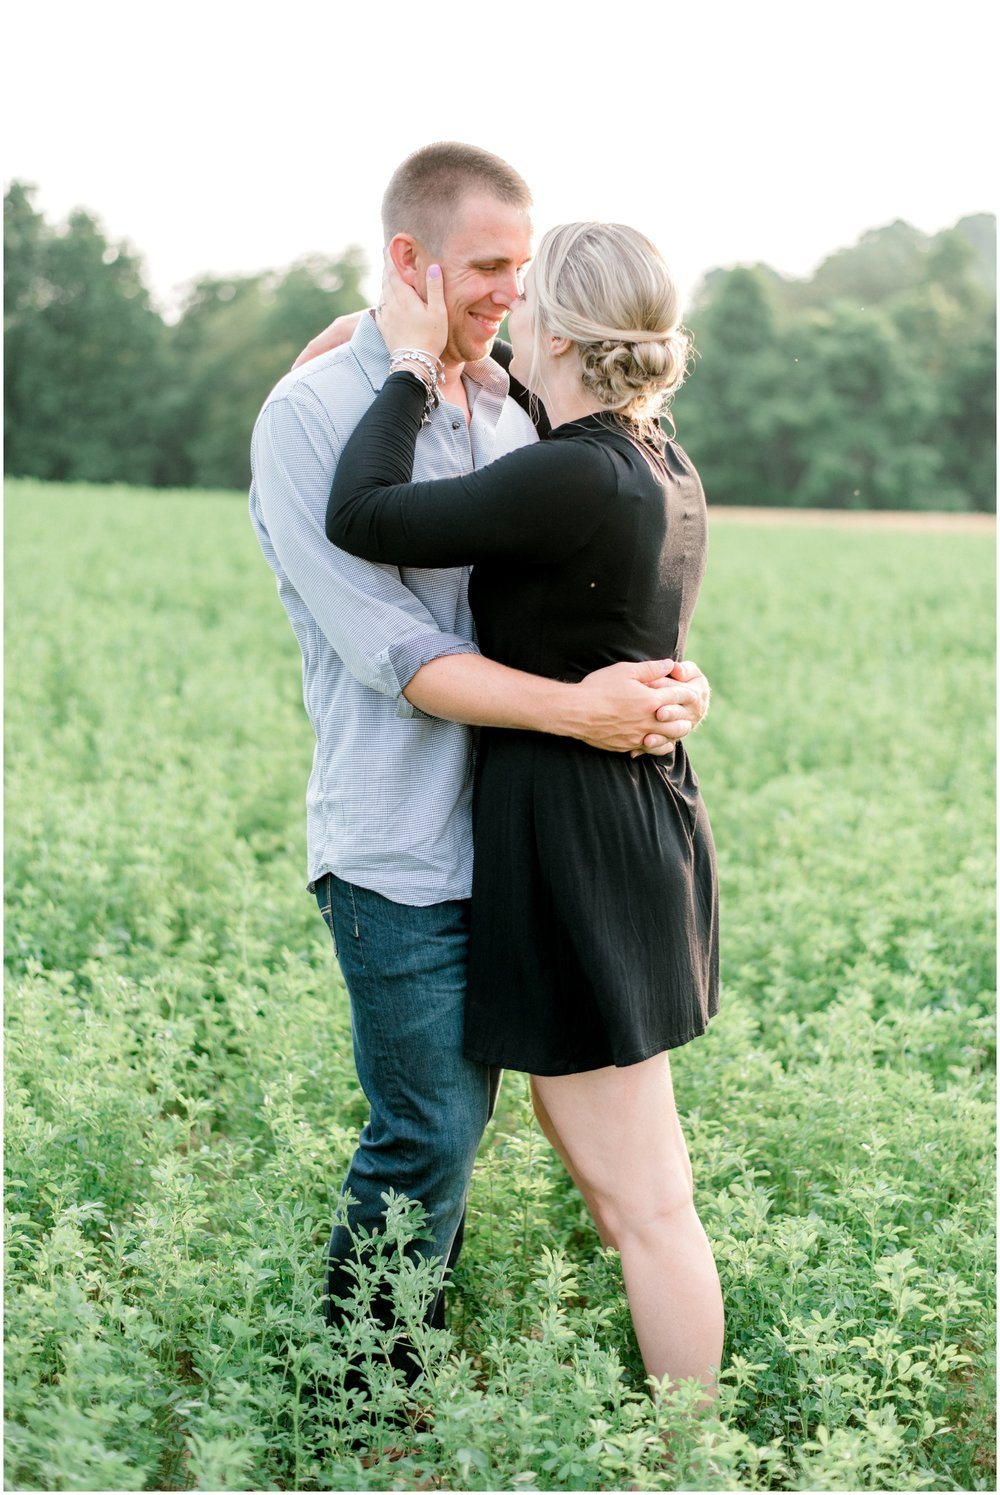 Summer Private Farm Engagement Session - Krista Brackin Photography_0021.jpg